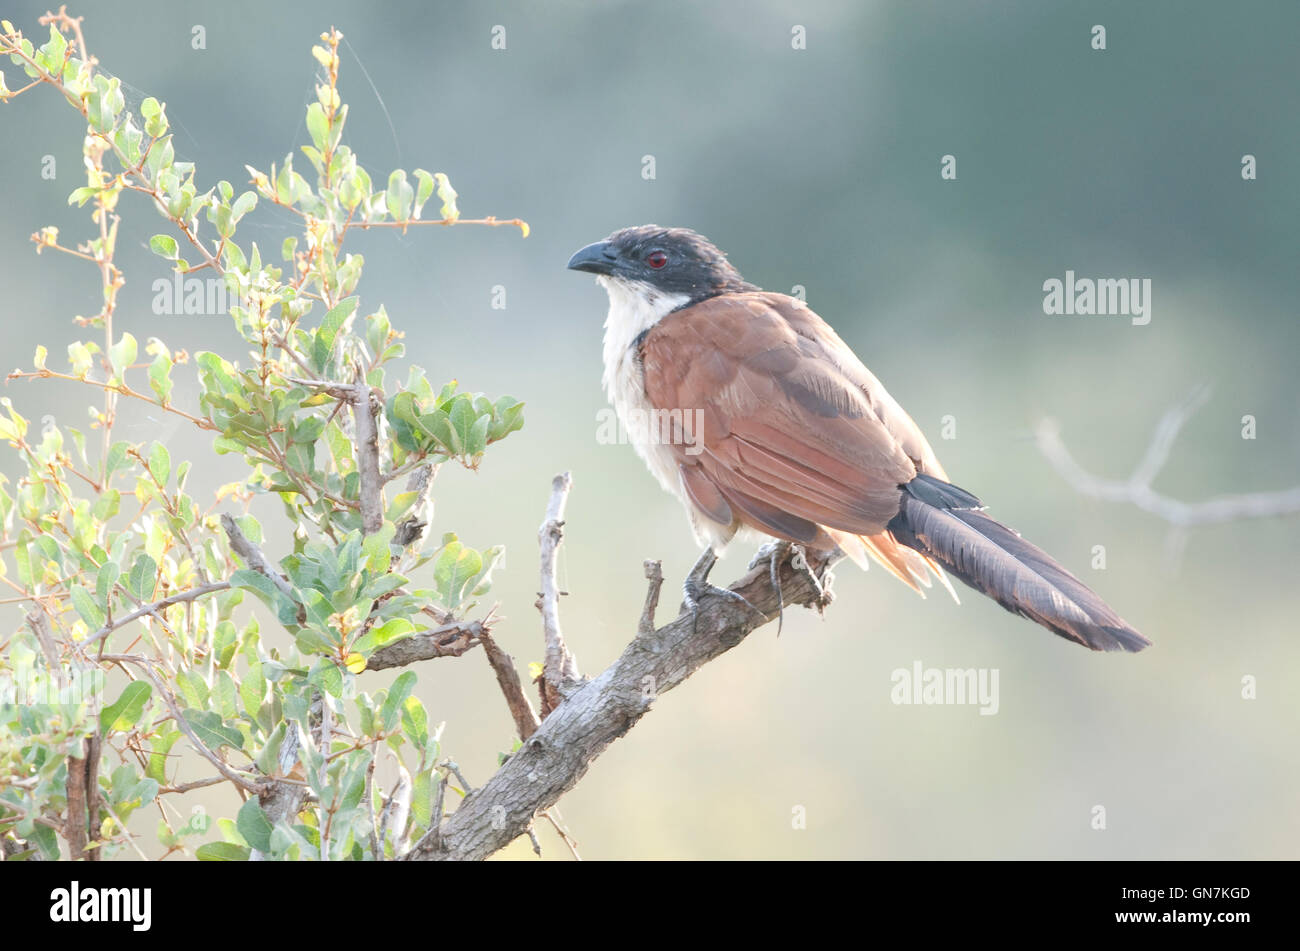 Burchell's Coucal (Centropus burchelli) on a branch - Stock Image